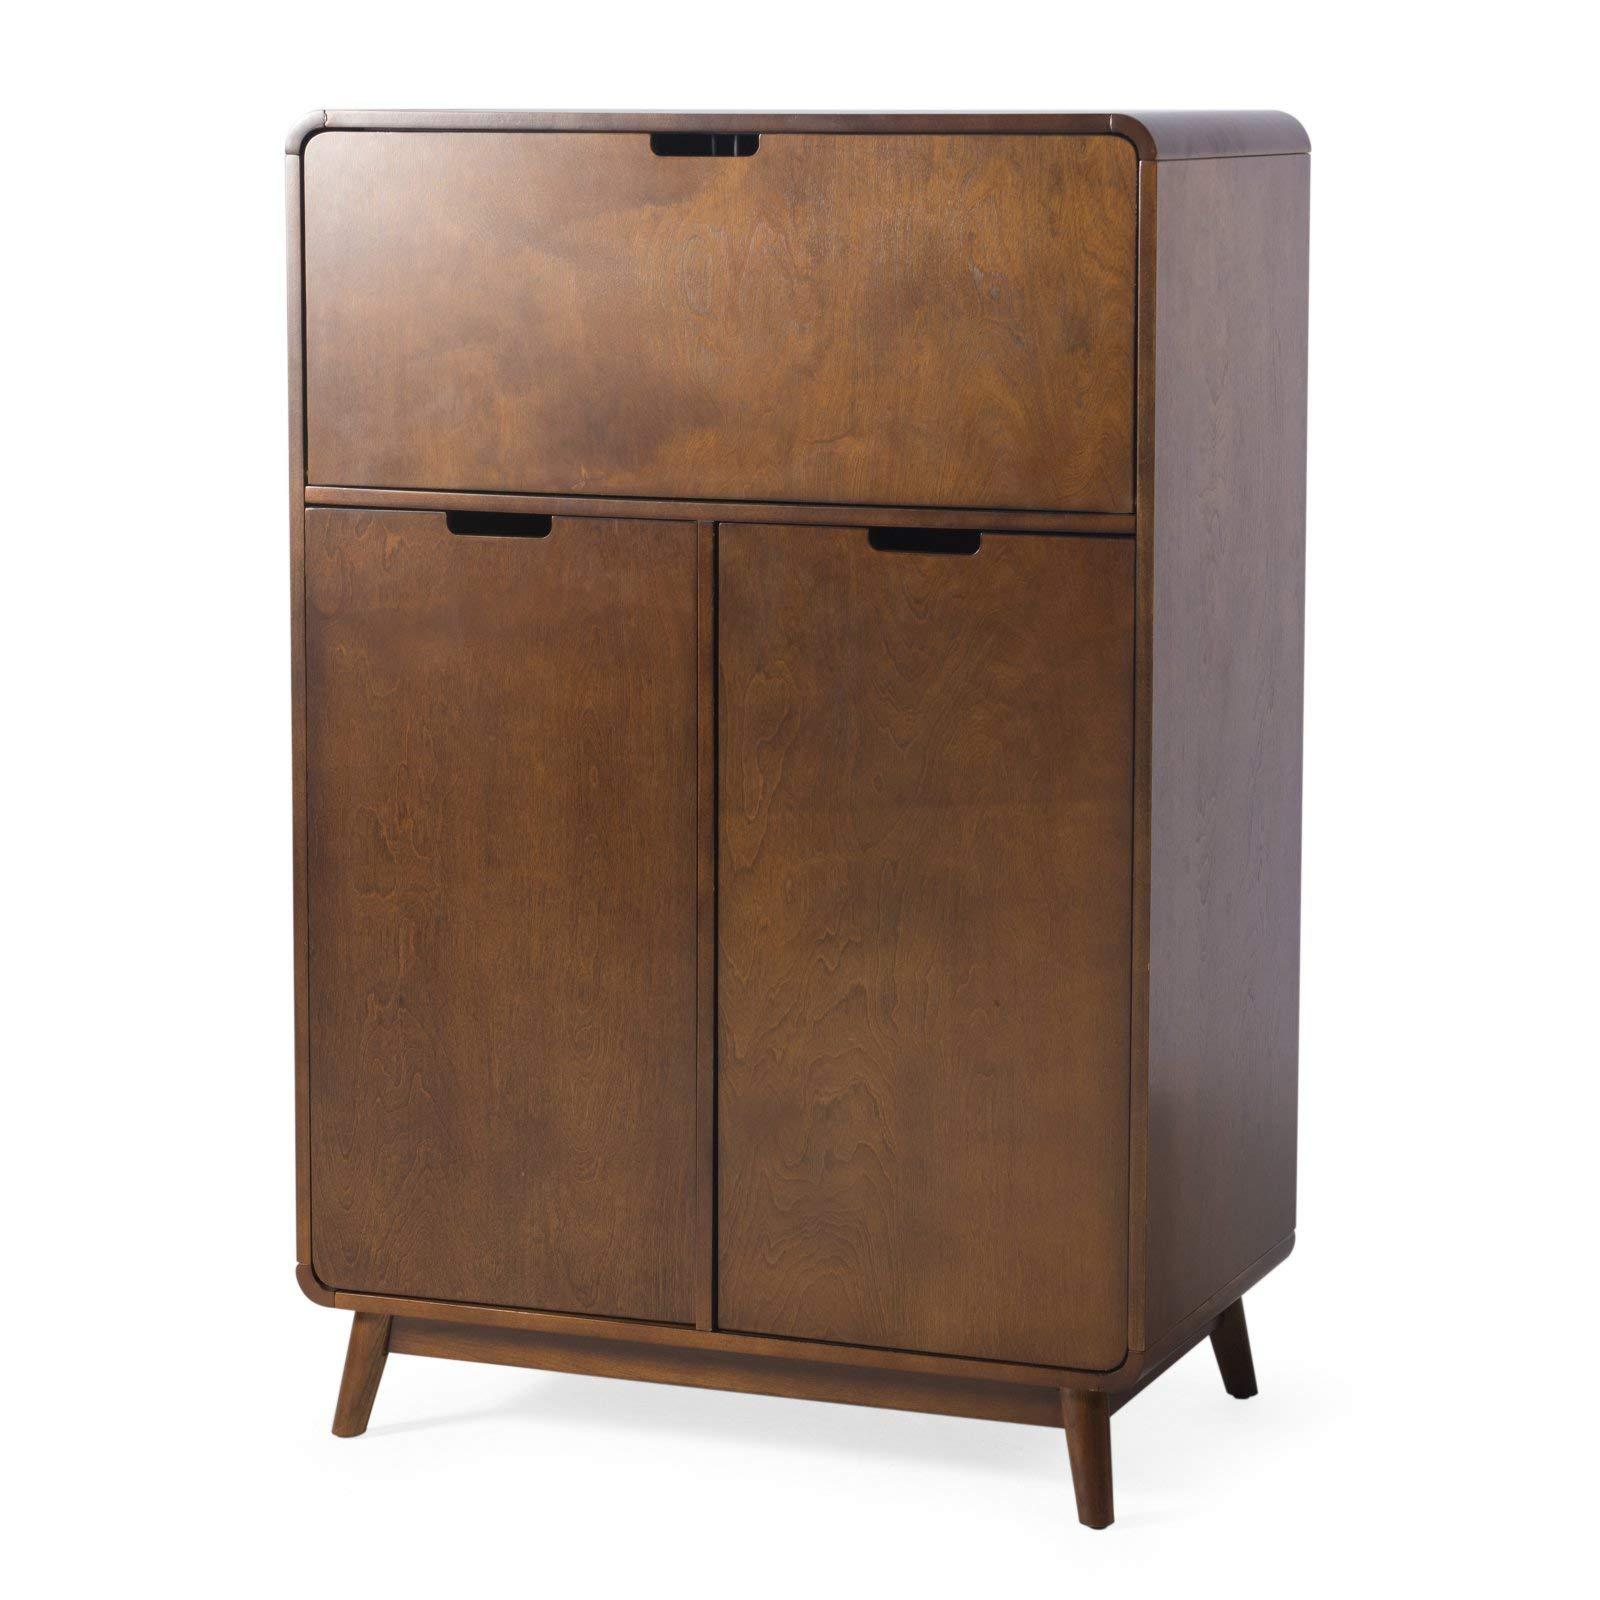 Rich Walnut Finish Wood Mid Century Modern Home Bar Cabinet Liquor Cabinet with Wine Racks by Home Collection